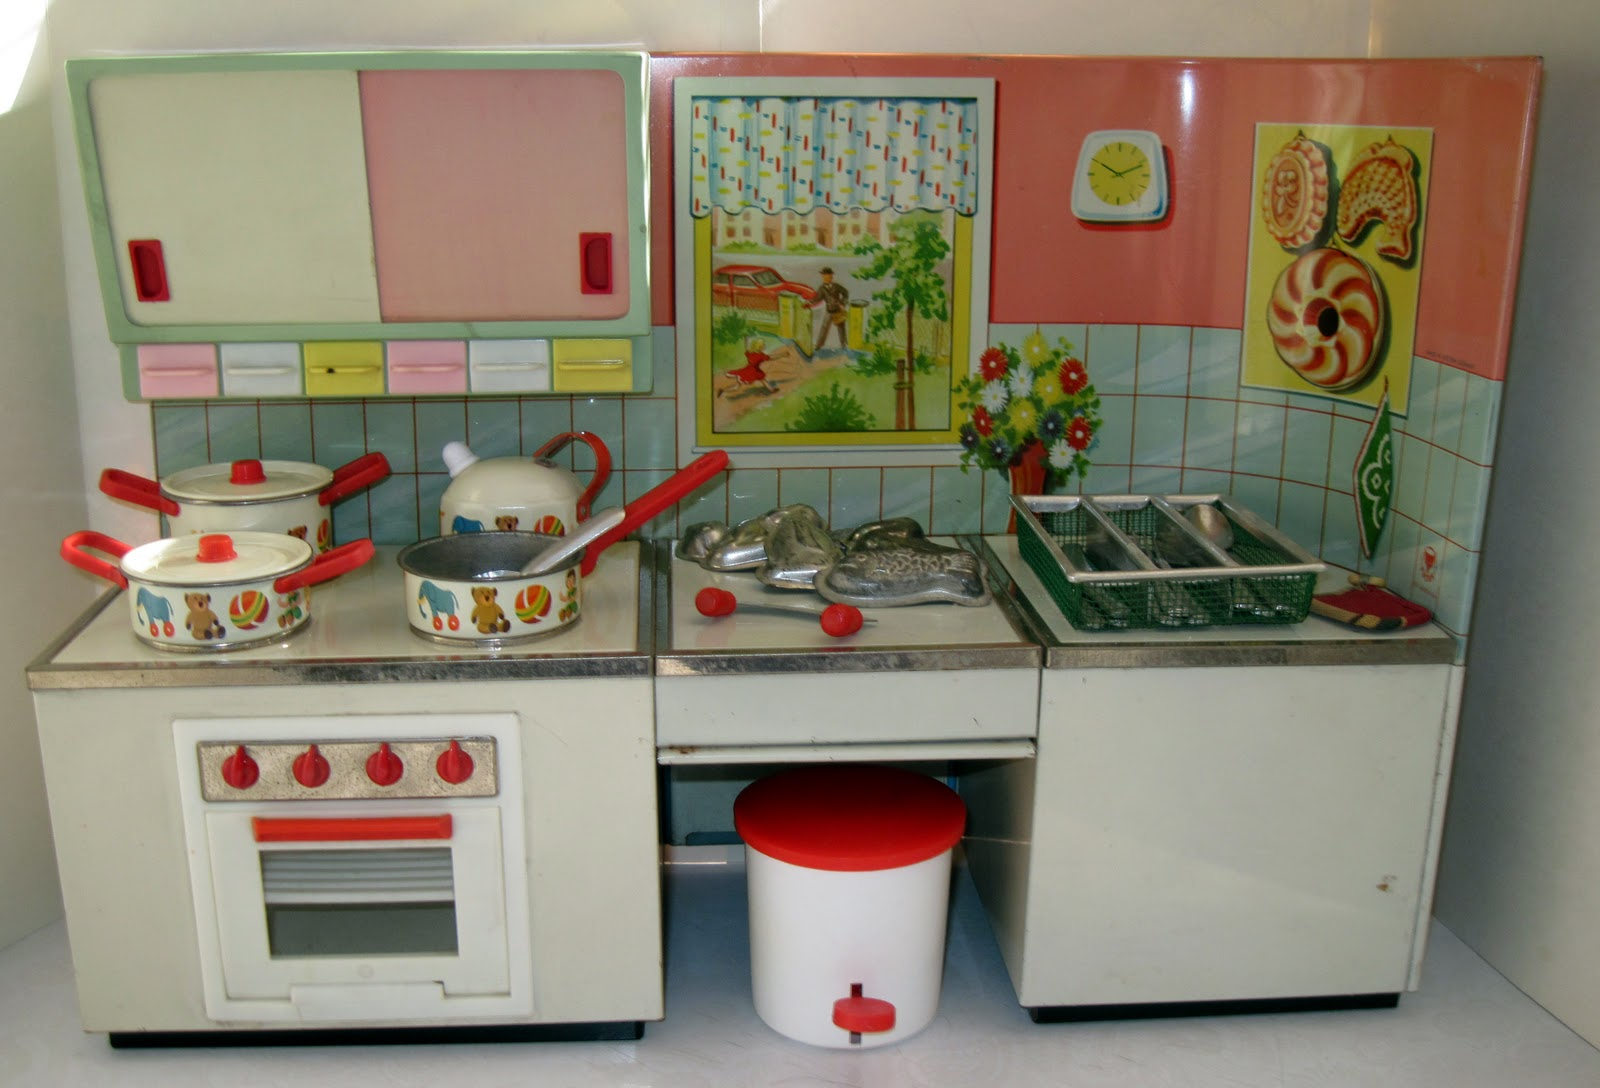 Tracy's Toys (and Some Other Stuff): 1950s German Kitchen Playset